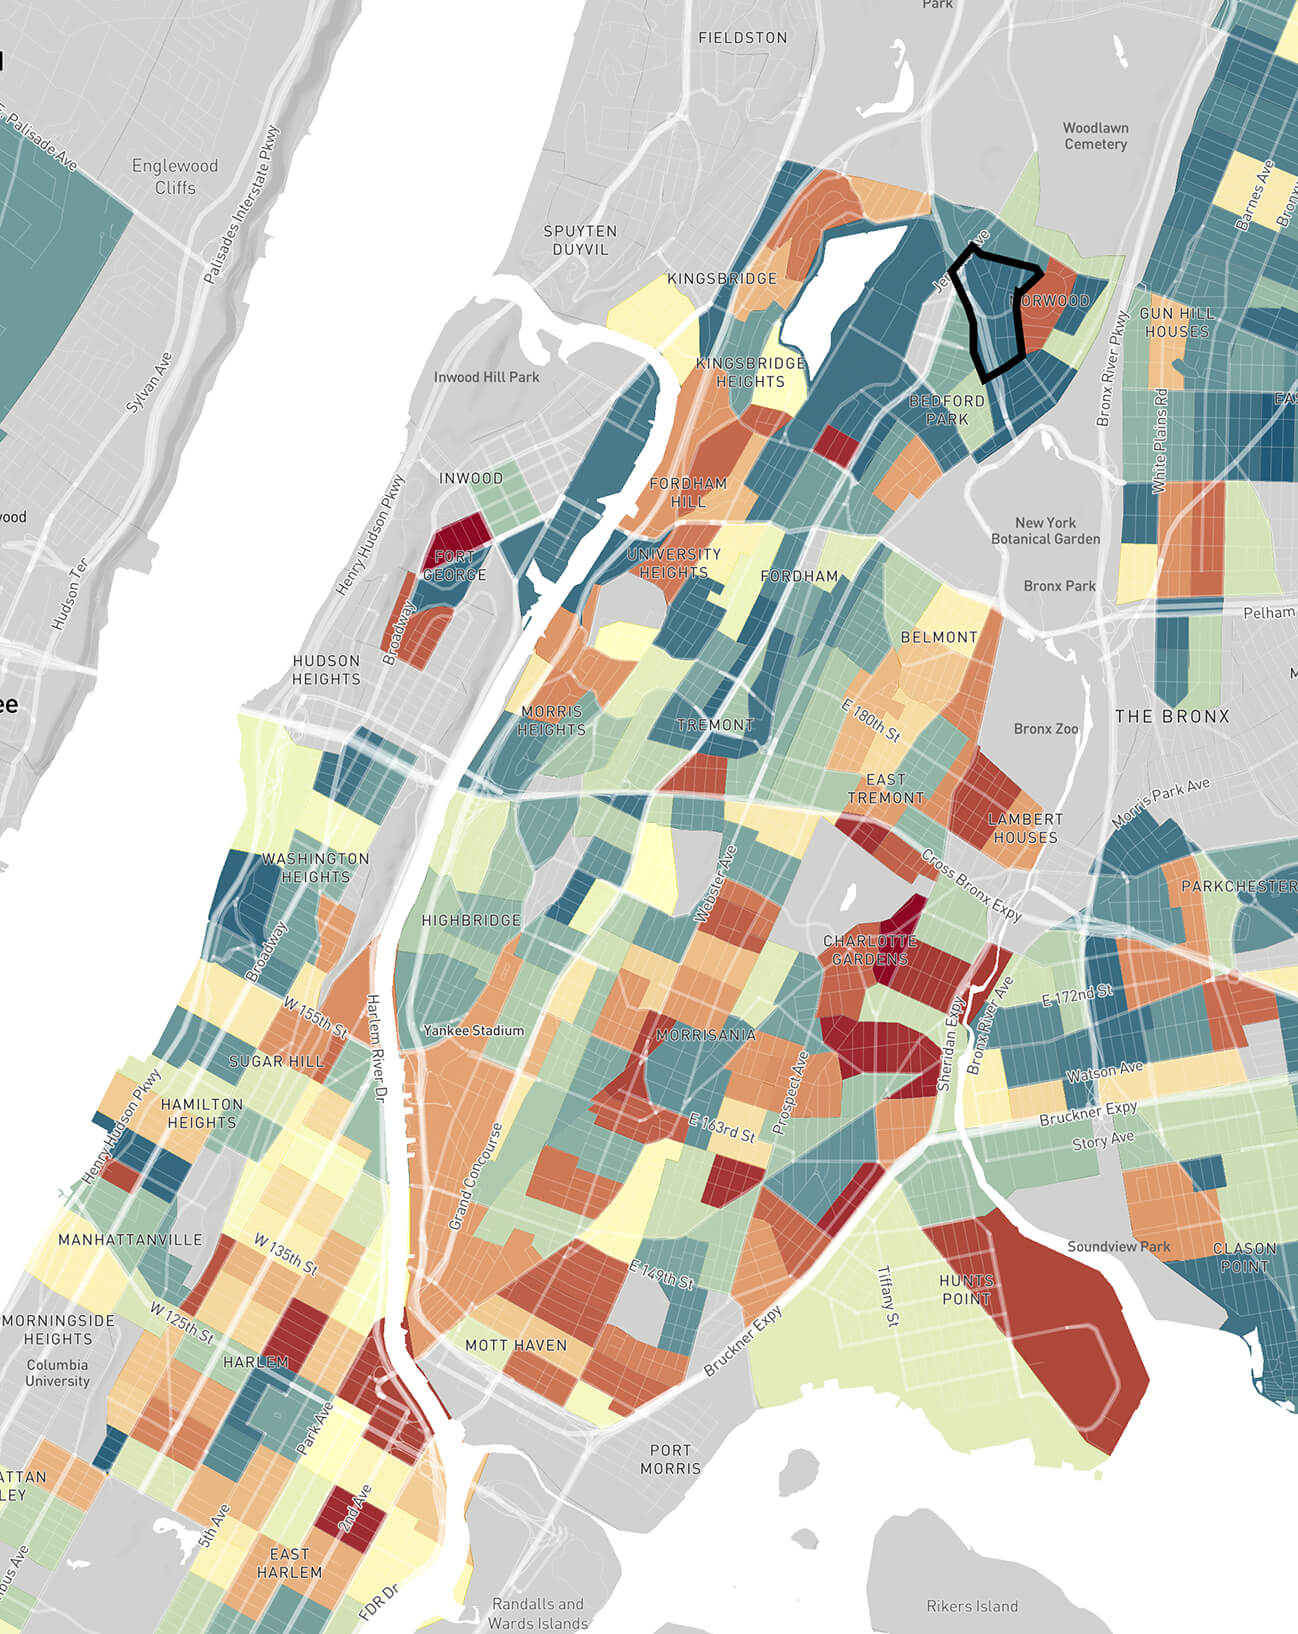 The Opportunity Atlas is an initial release of social mobility data, the result of a collaboration between researchers at the Census Bureau, Harvard University, and Brown University.